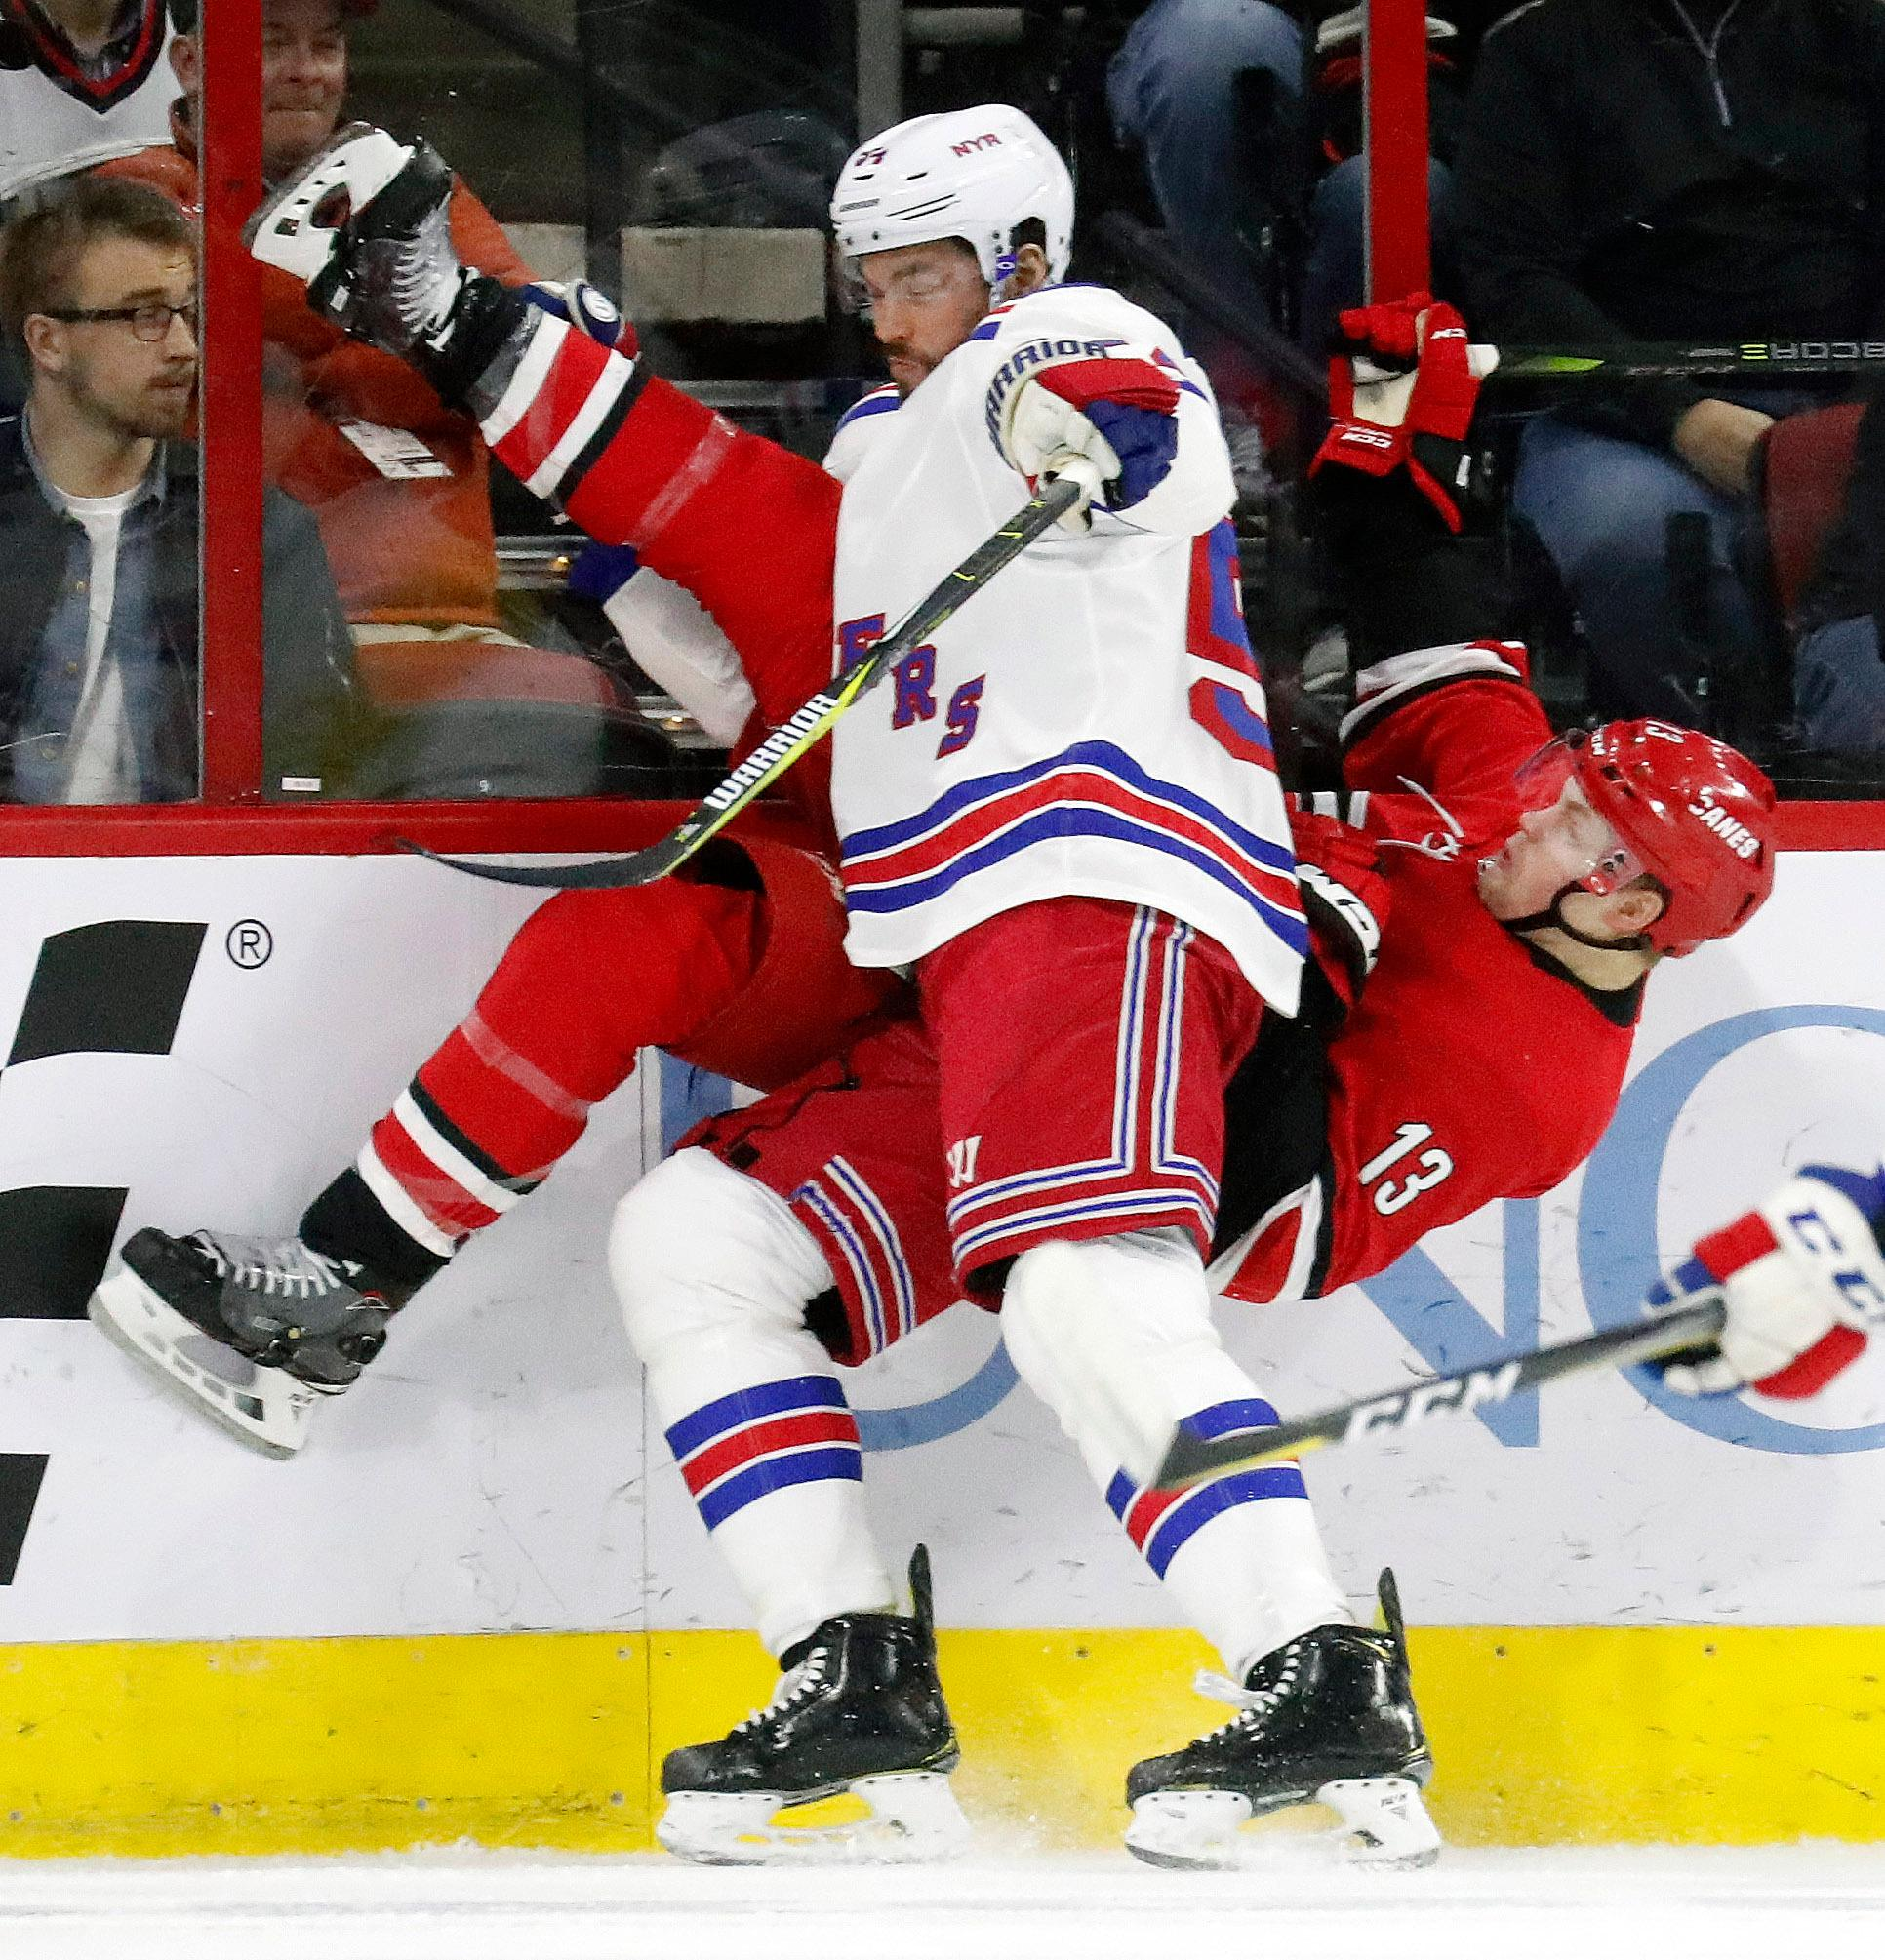 Carolina Hurricanes' Warren Foegele (13) and New York Rangers' Adam McQuaid (54) collide along the boards during the first period of an NHL hockey game in Raleigh, N.C., Tuesday, Feb. 19, 2019. (AP Photo/Chris Seward)